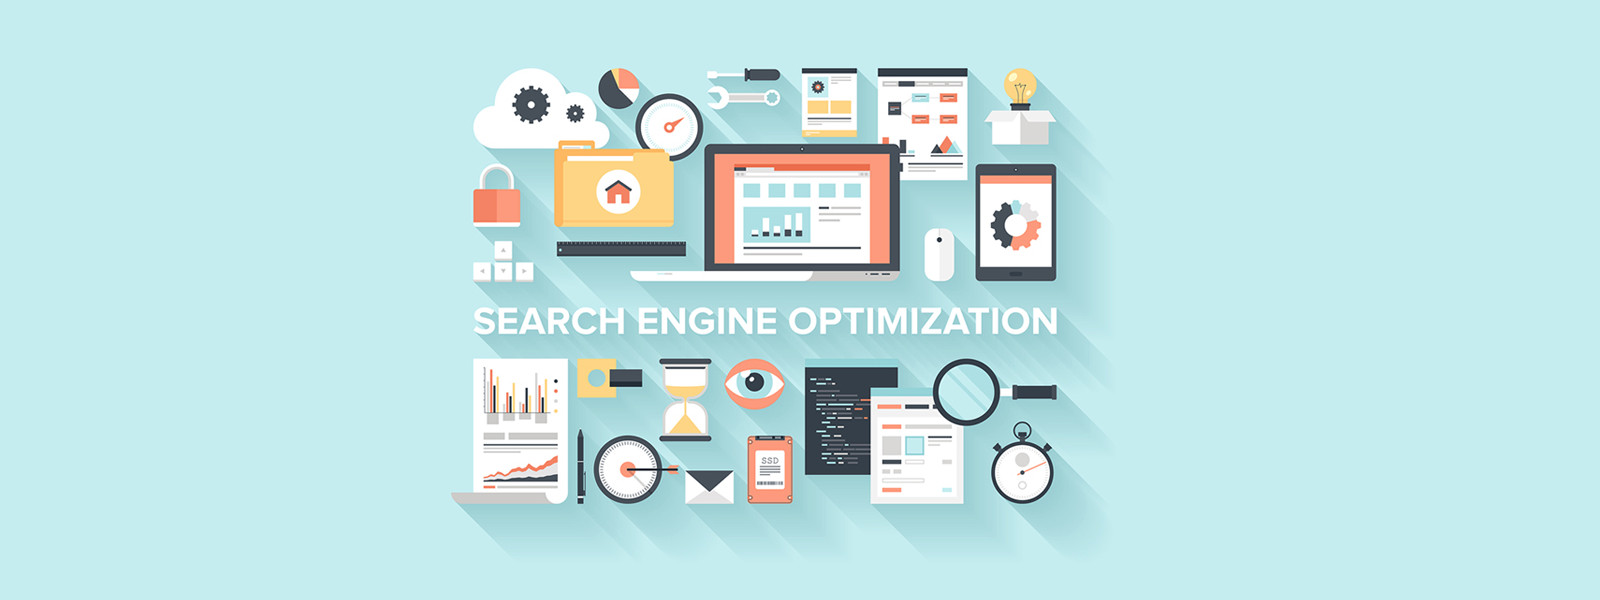 searchengine optimisation